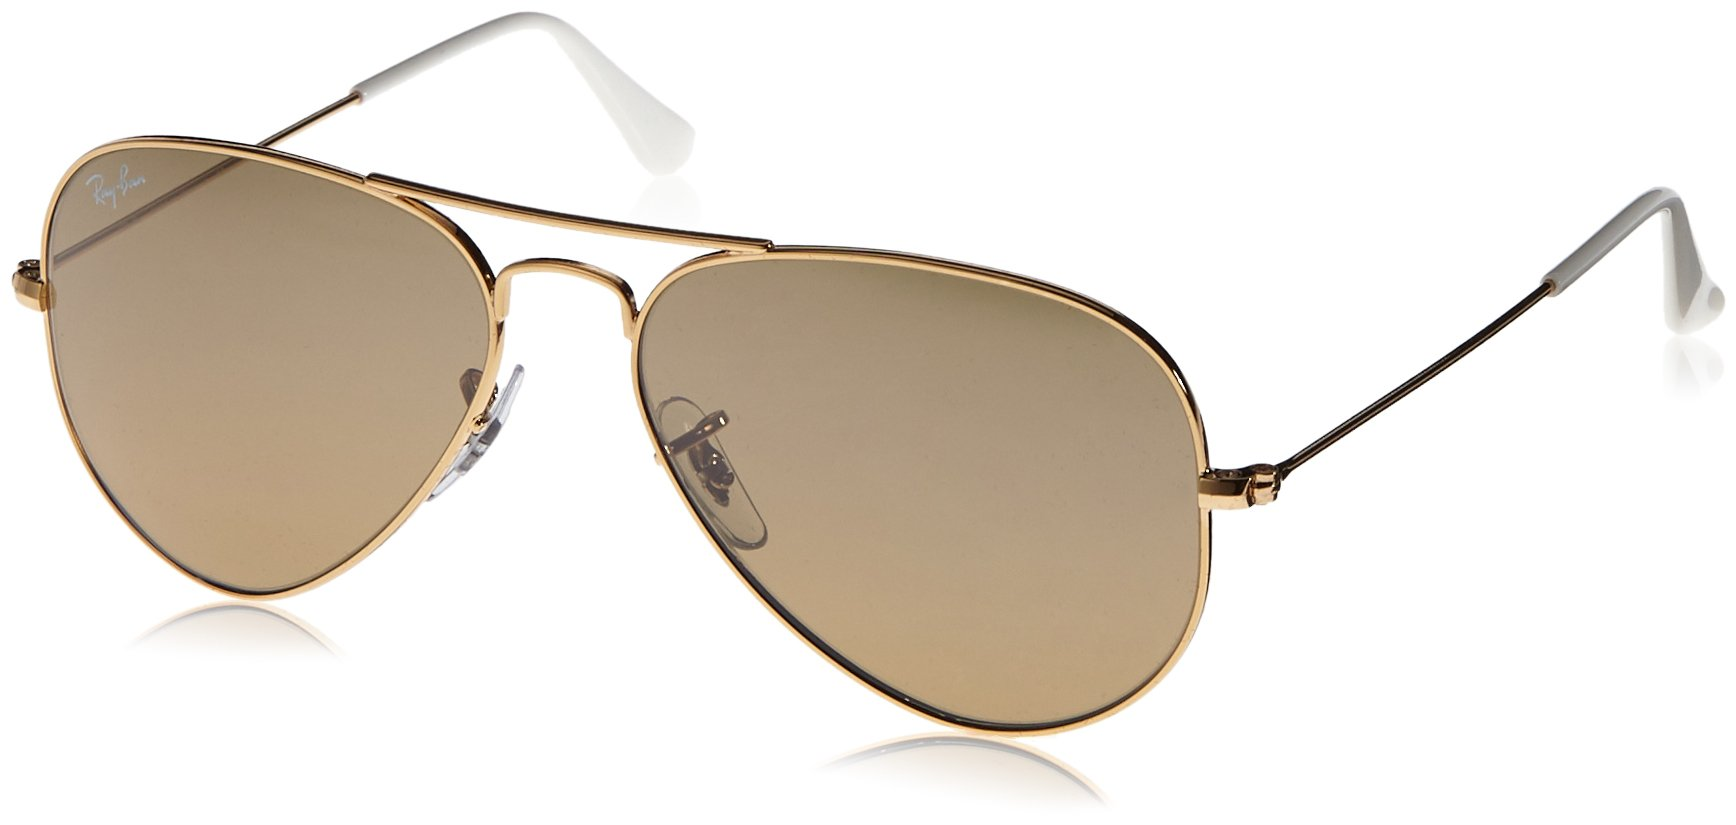 Ray-Ban 3025 Aviator Large Metal Mirrored Non-Polarized Sunglasses, Gold/Brown/Silver Mirror (001/3K), 55mm by Ray-Ban